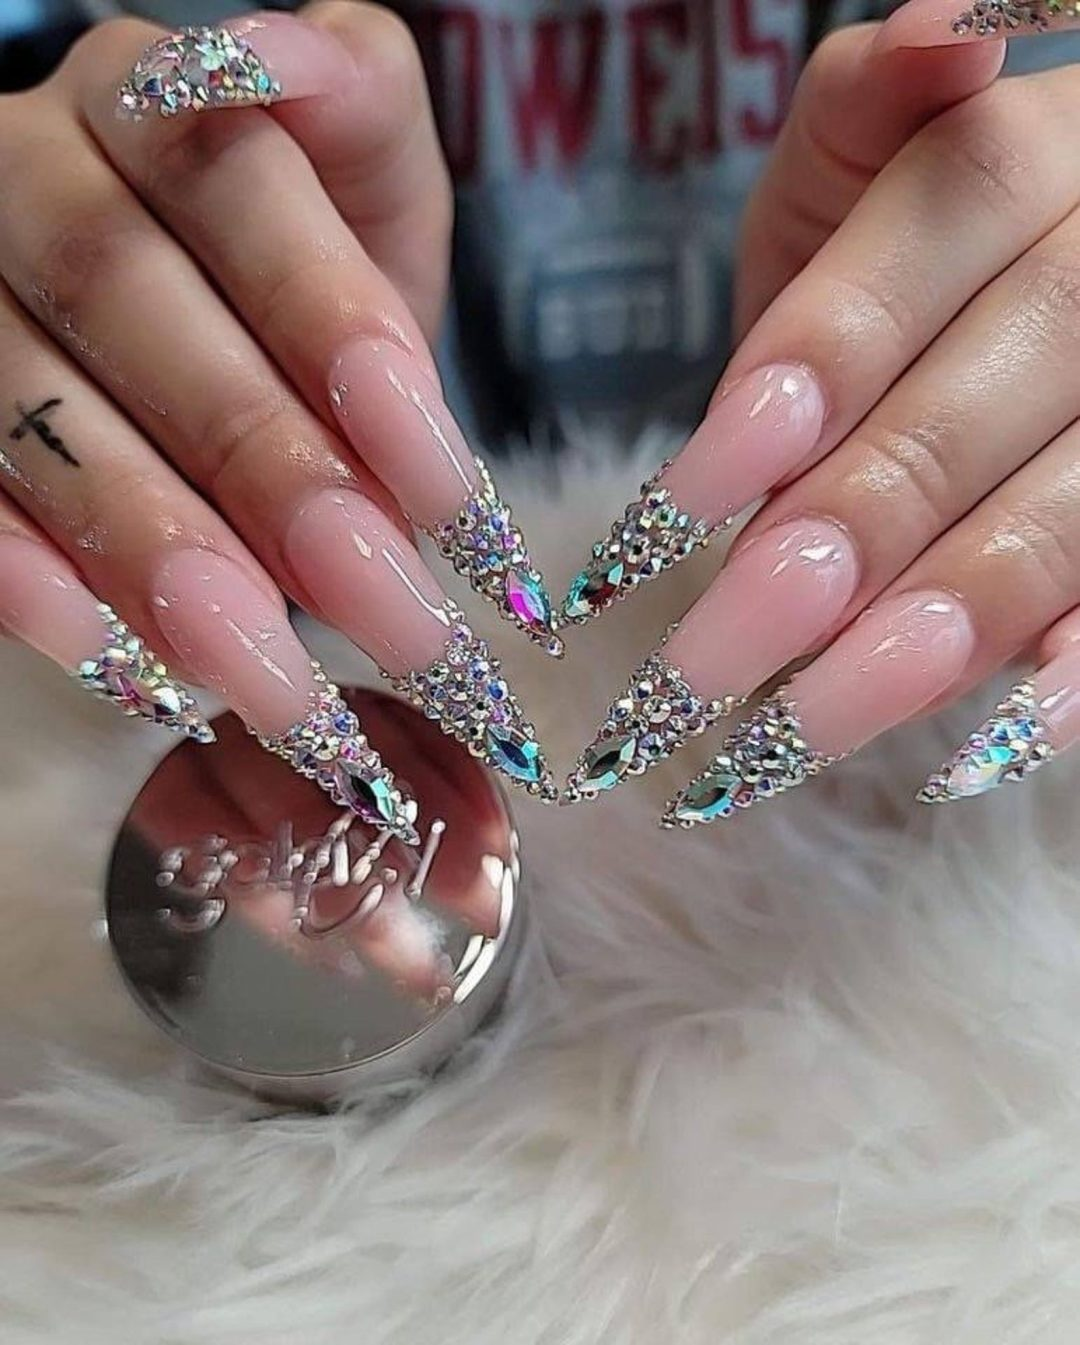 Nude nails with rhinestone tips